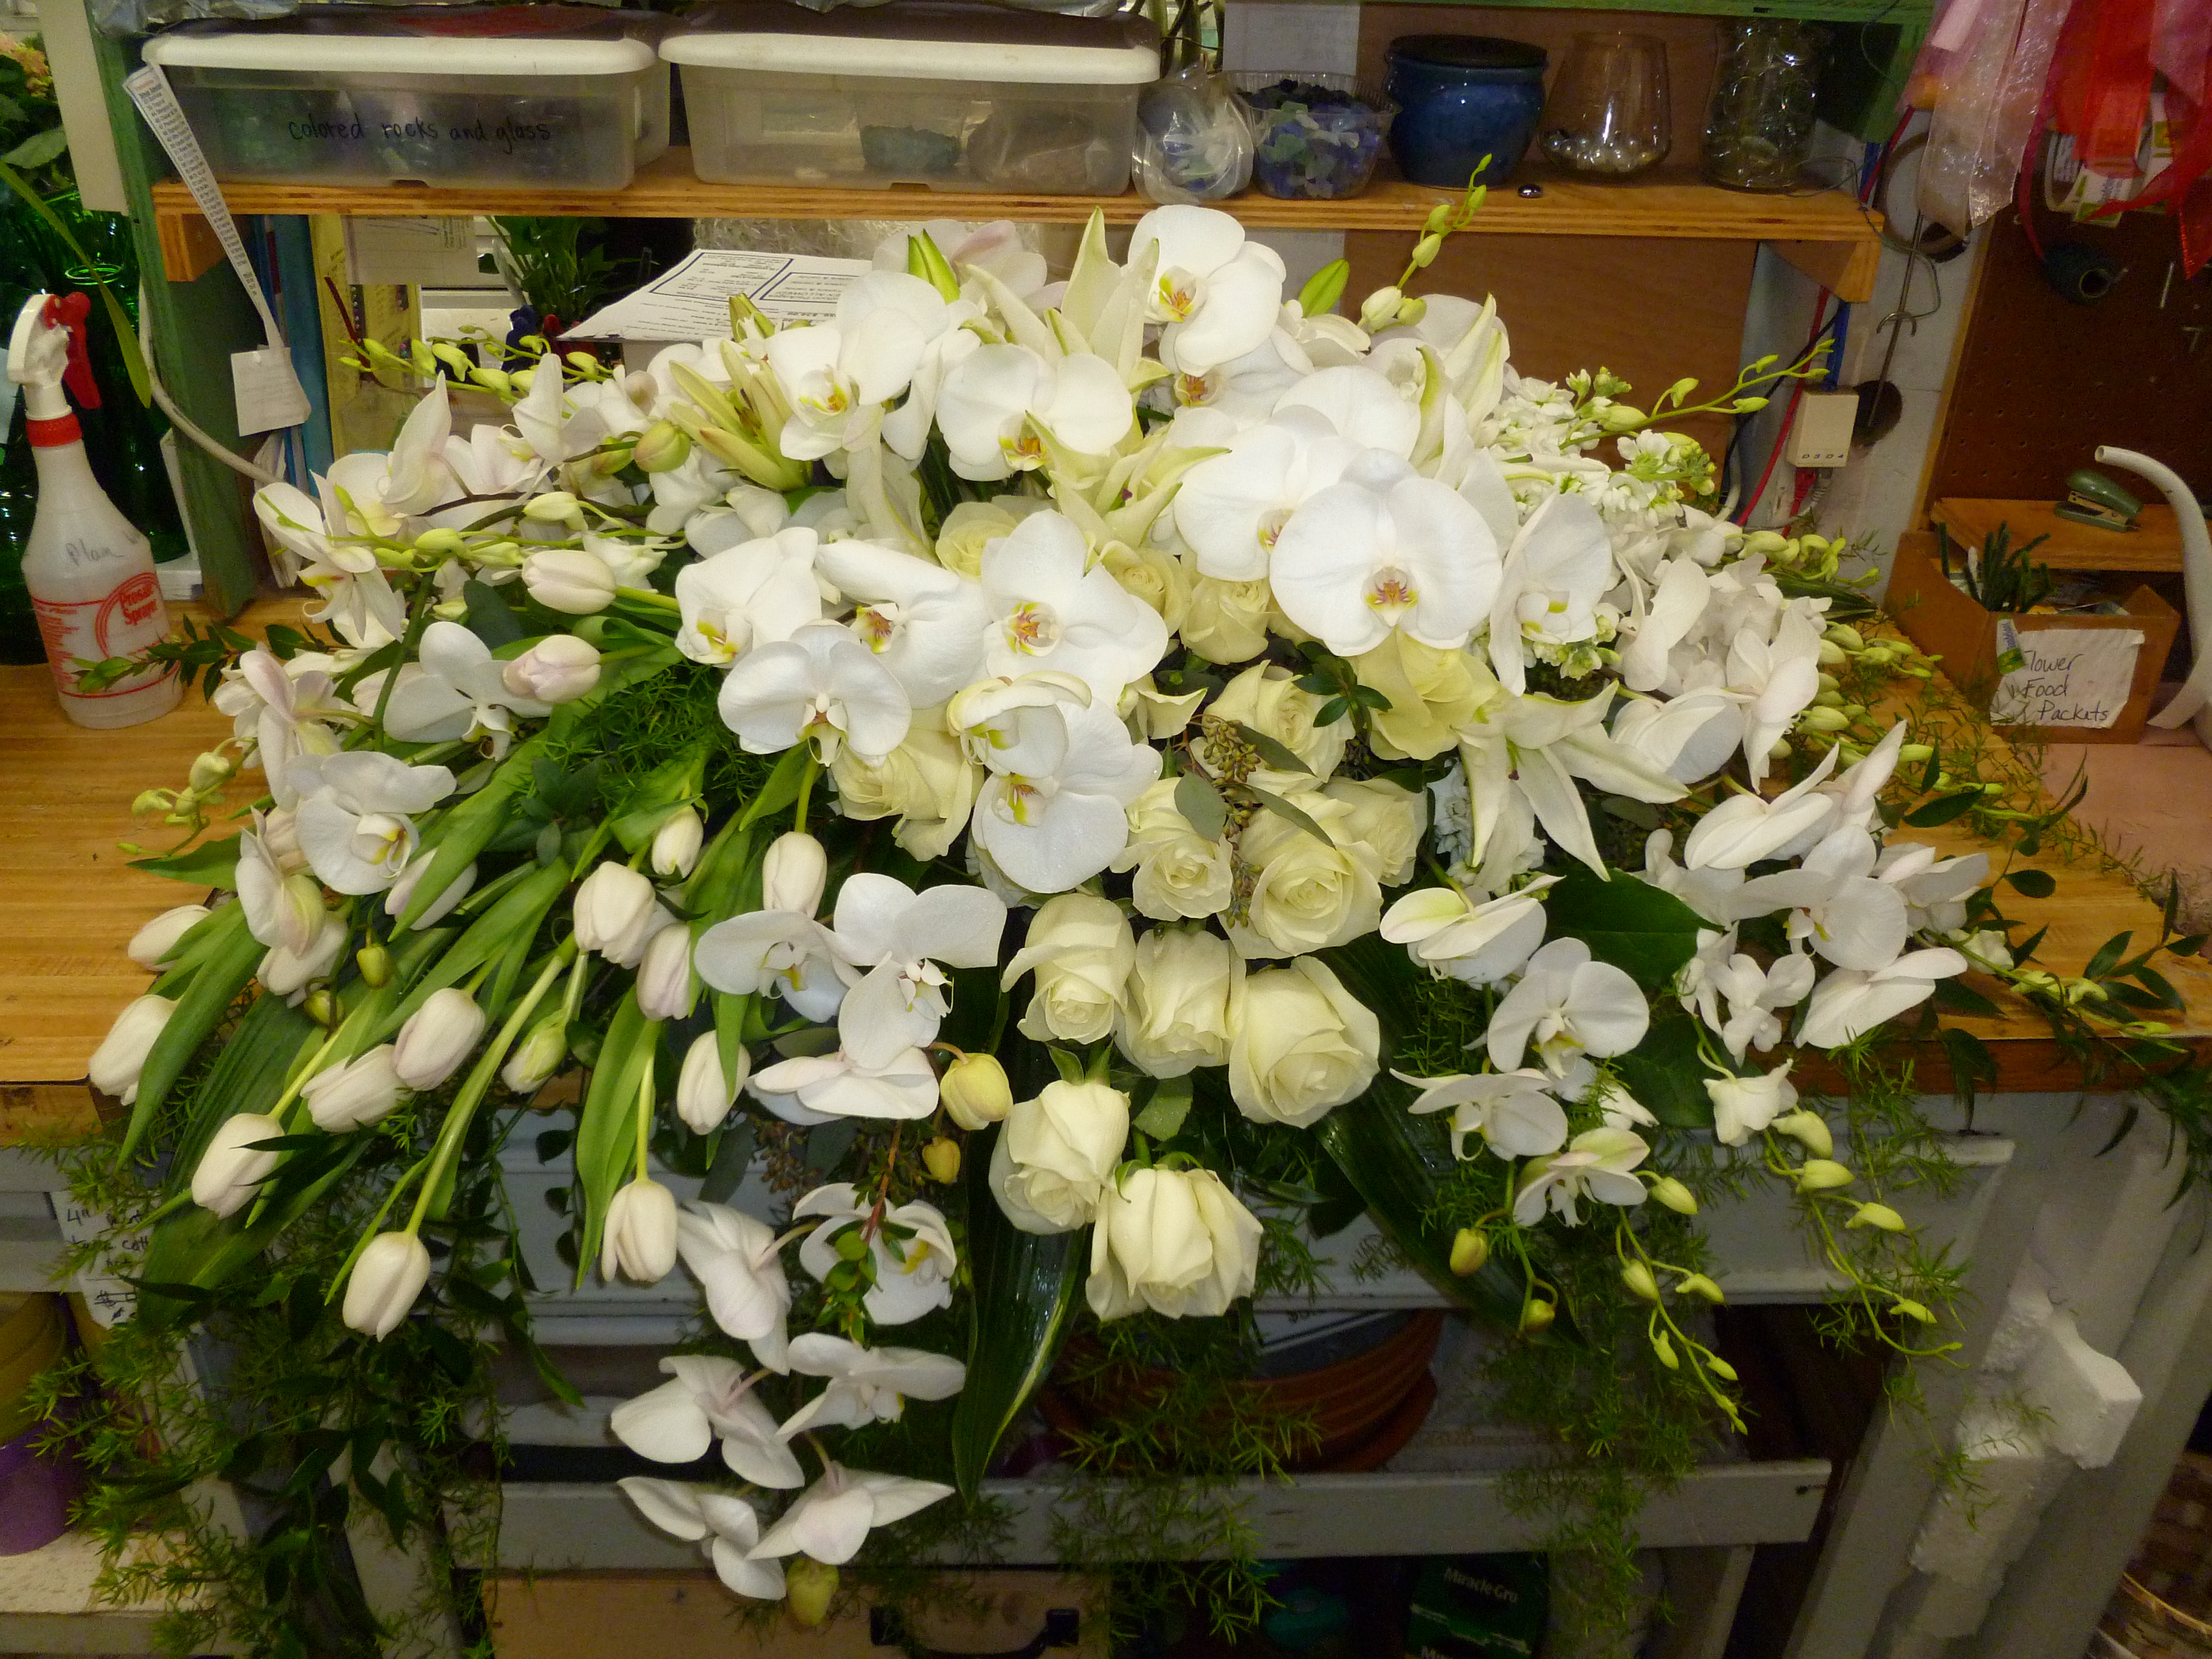 Memorial service funeral flowers dandelions flowers gifts rate this izmirmasajfo Images